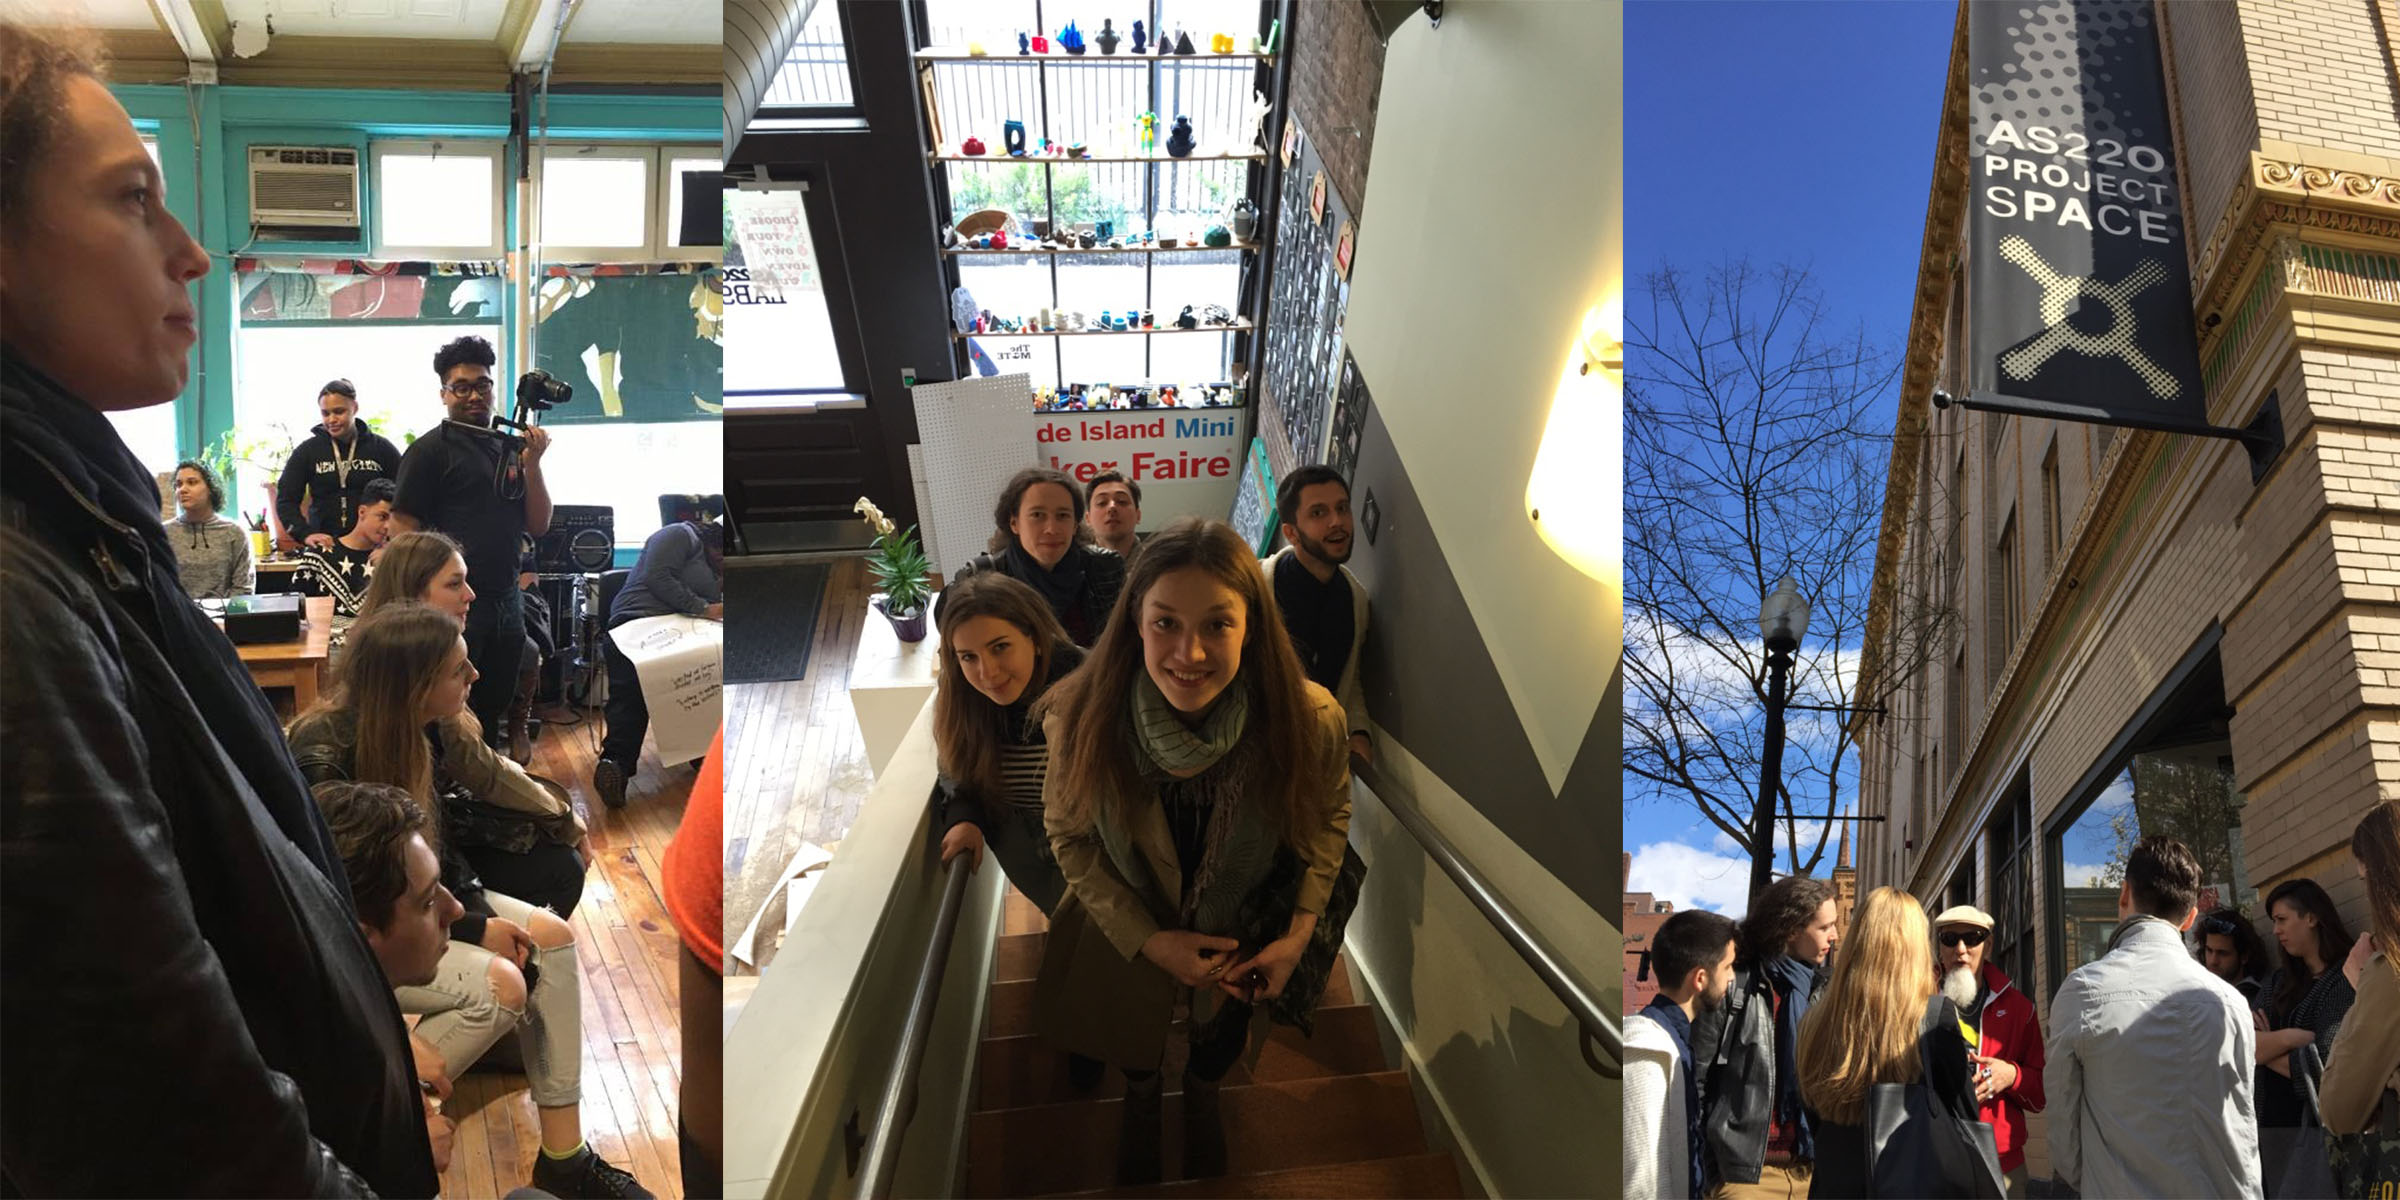 A collage of three pictures showing students in conversation in a classroom, riding up an escalator, and outside of a building.